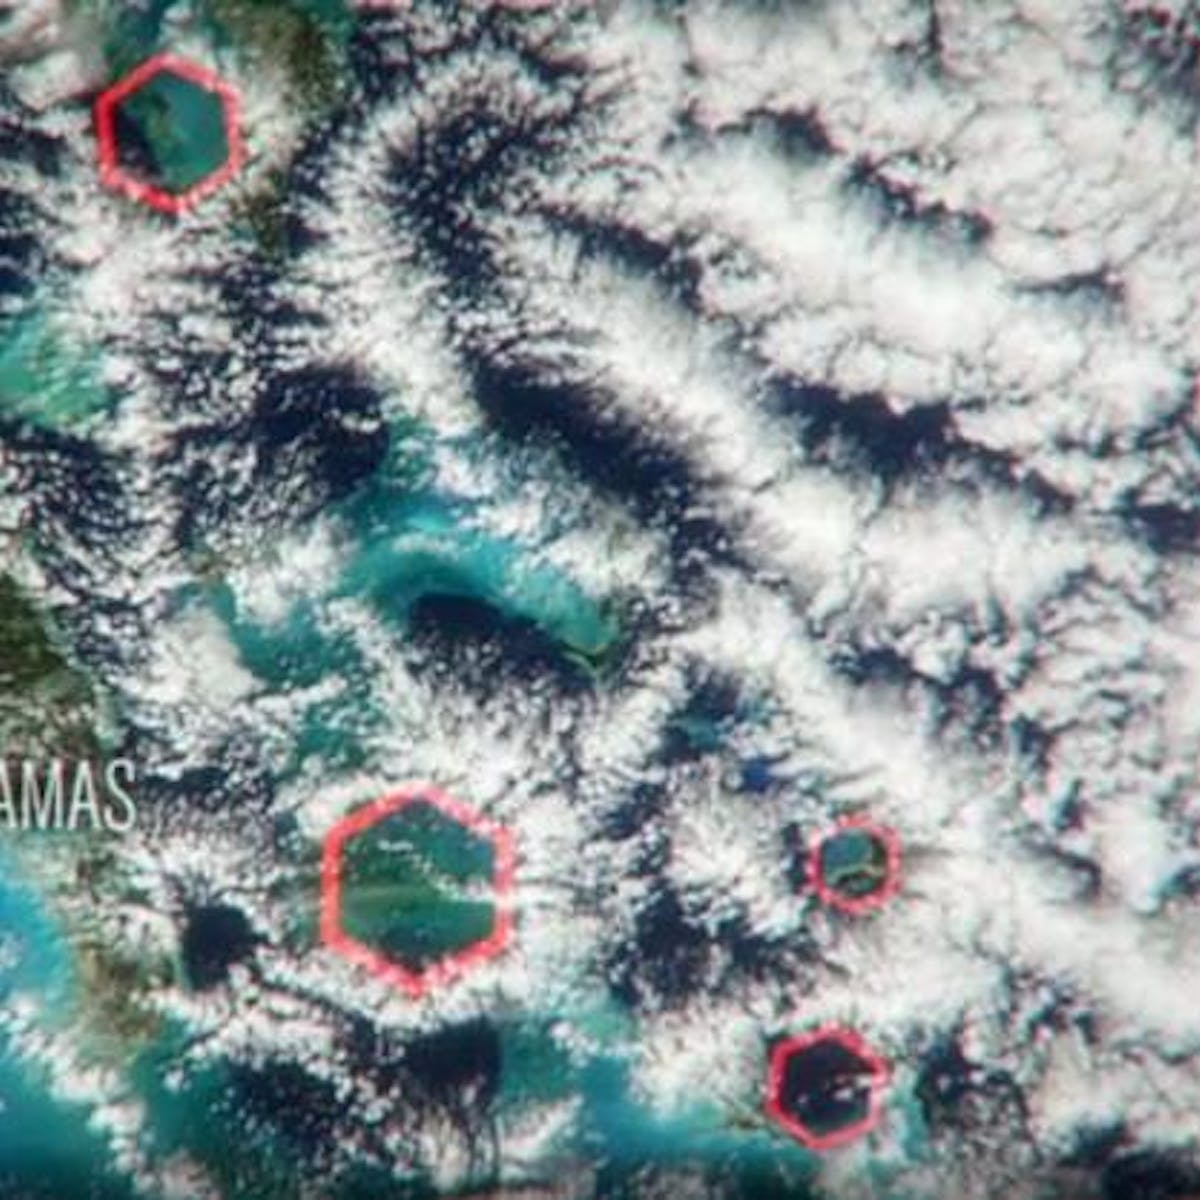 The Bermuda Triangle Microburst Theory Blamed for Freaky Occurrences